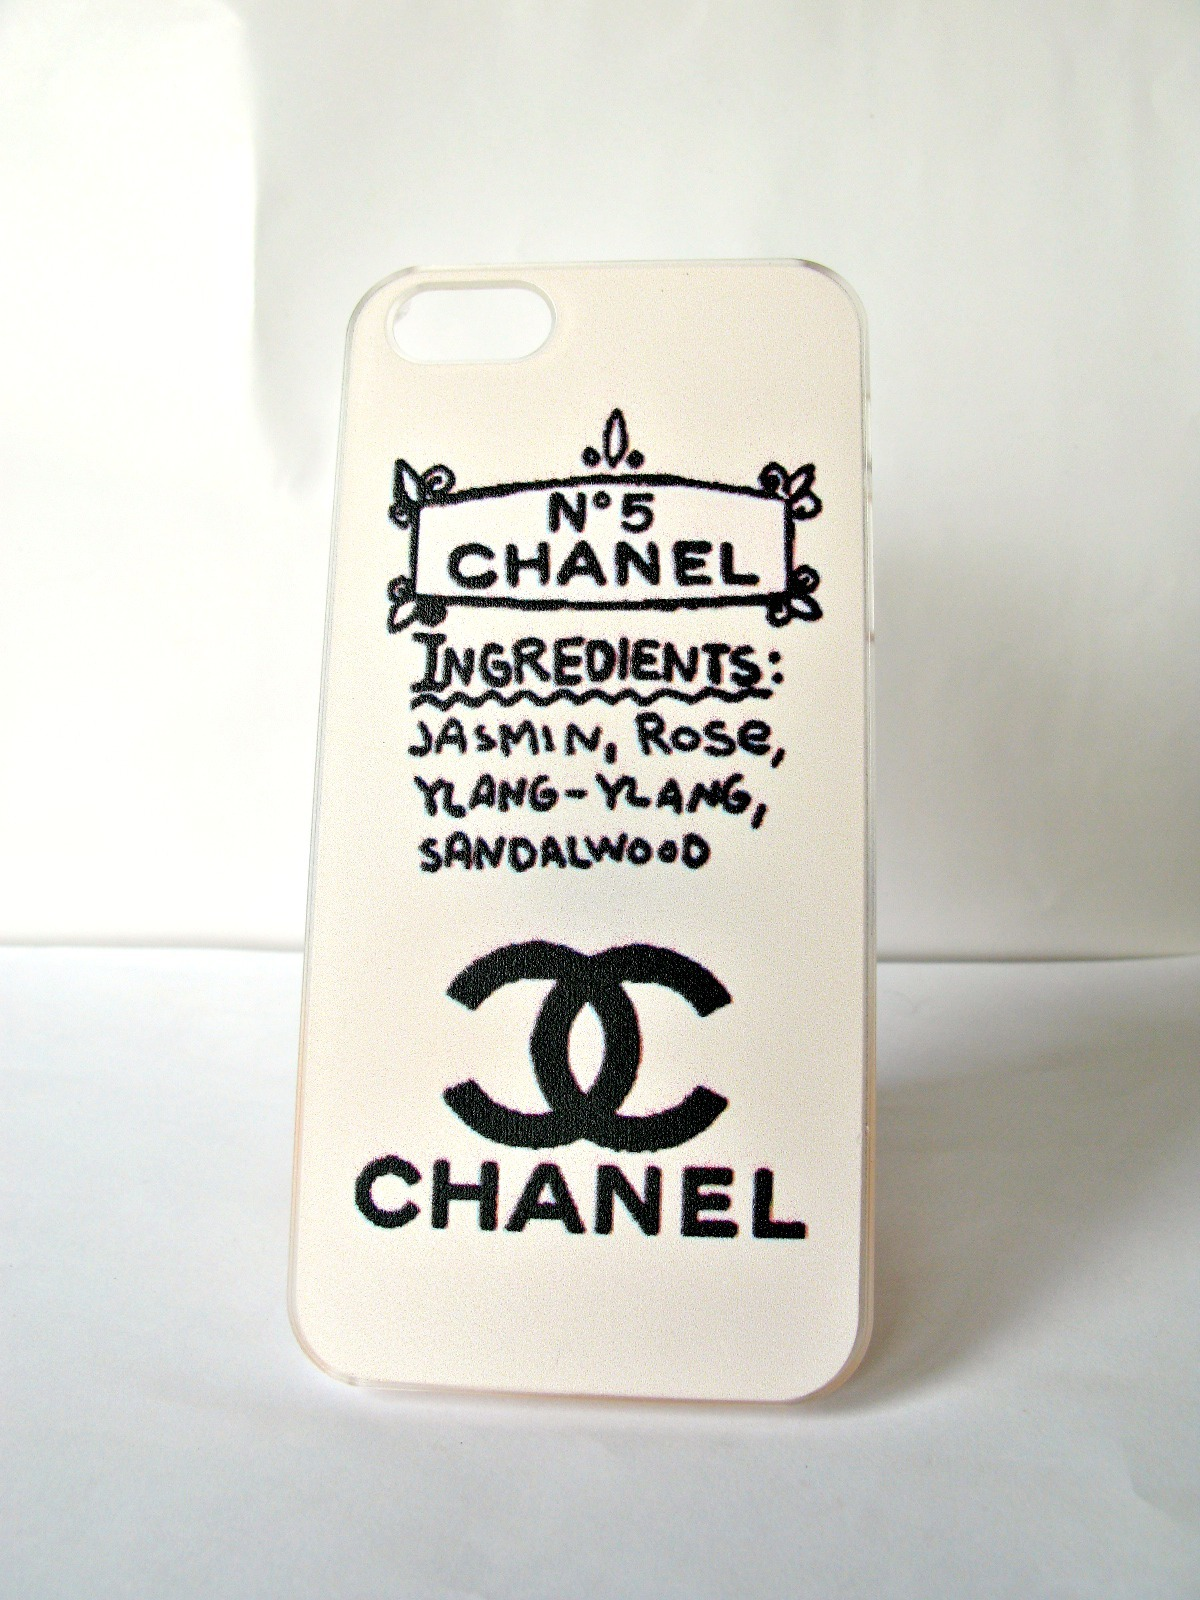 Coco Chanel Phone Cover Chanel Cell Phone Cases Chanel